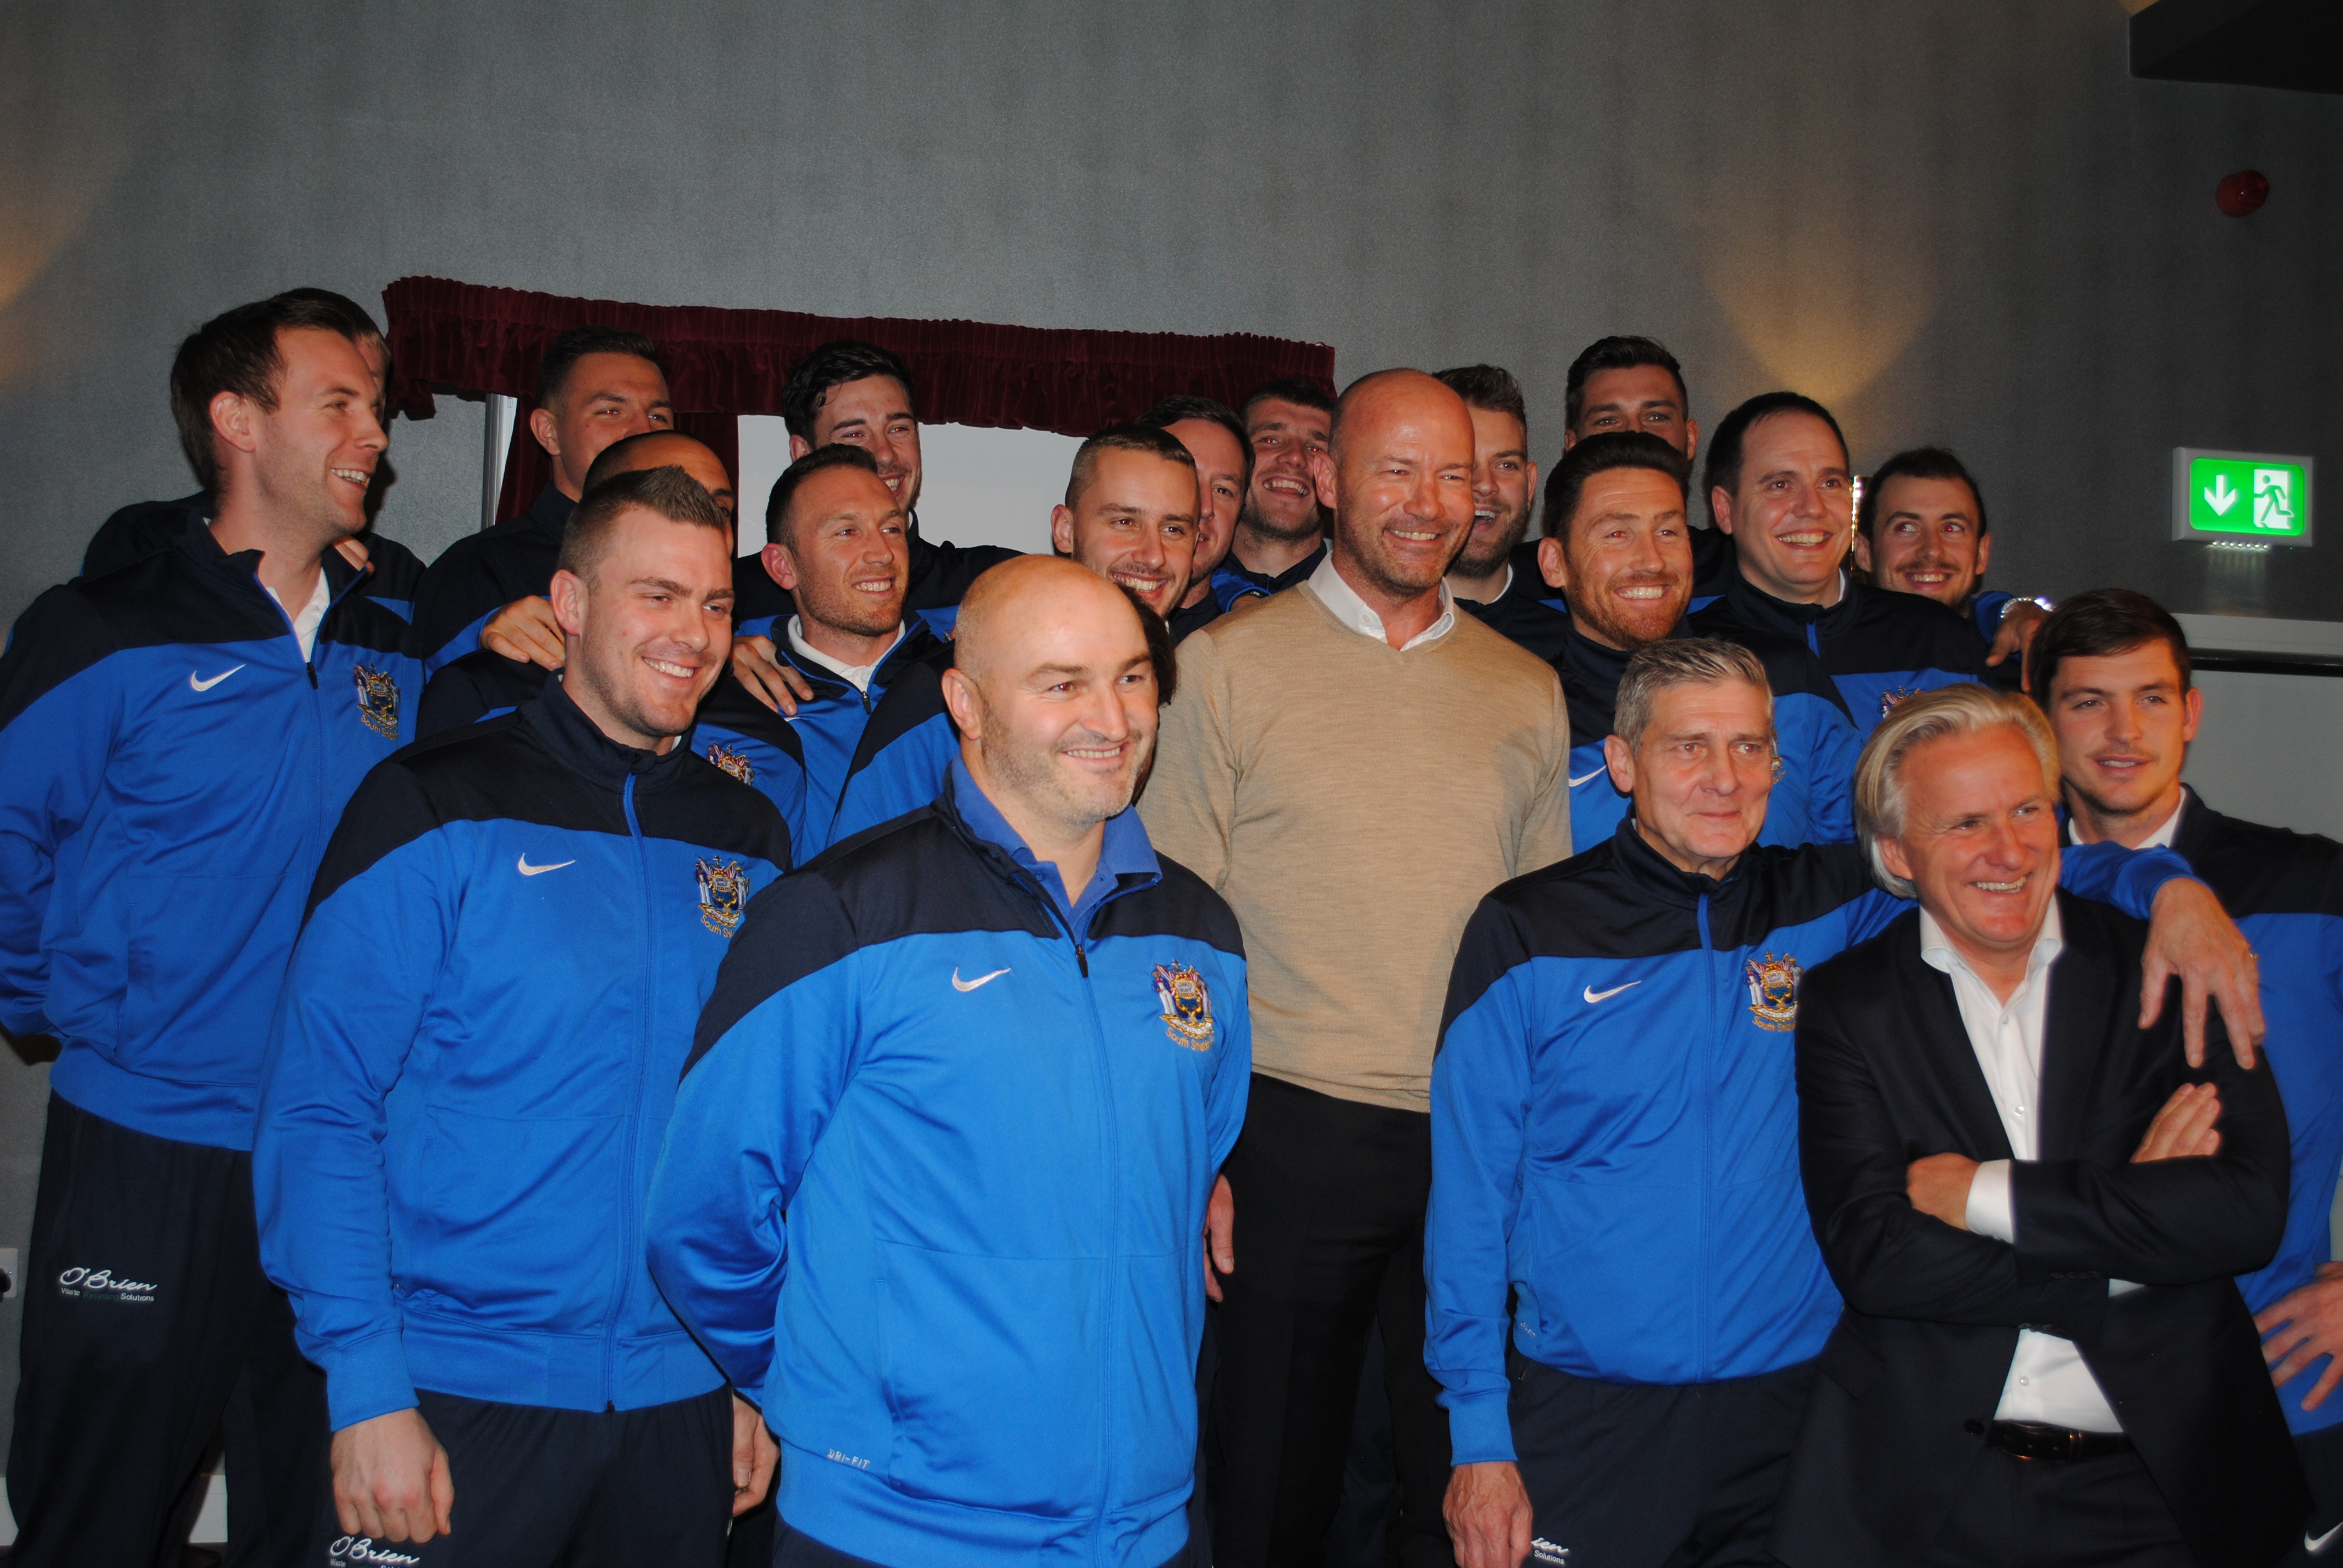 Alan Shearer OBE launches opening weekend of Mariners Park